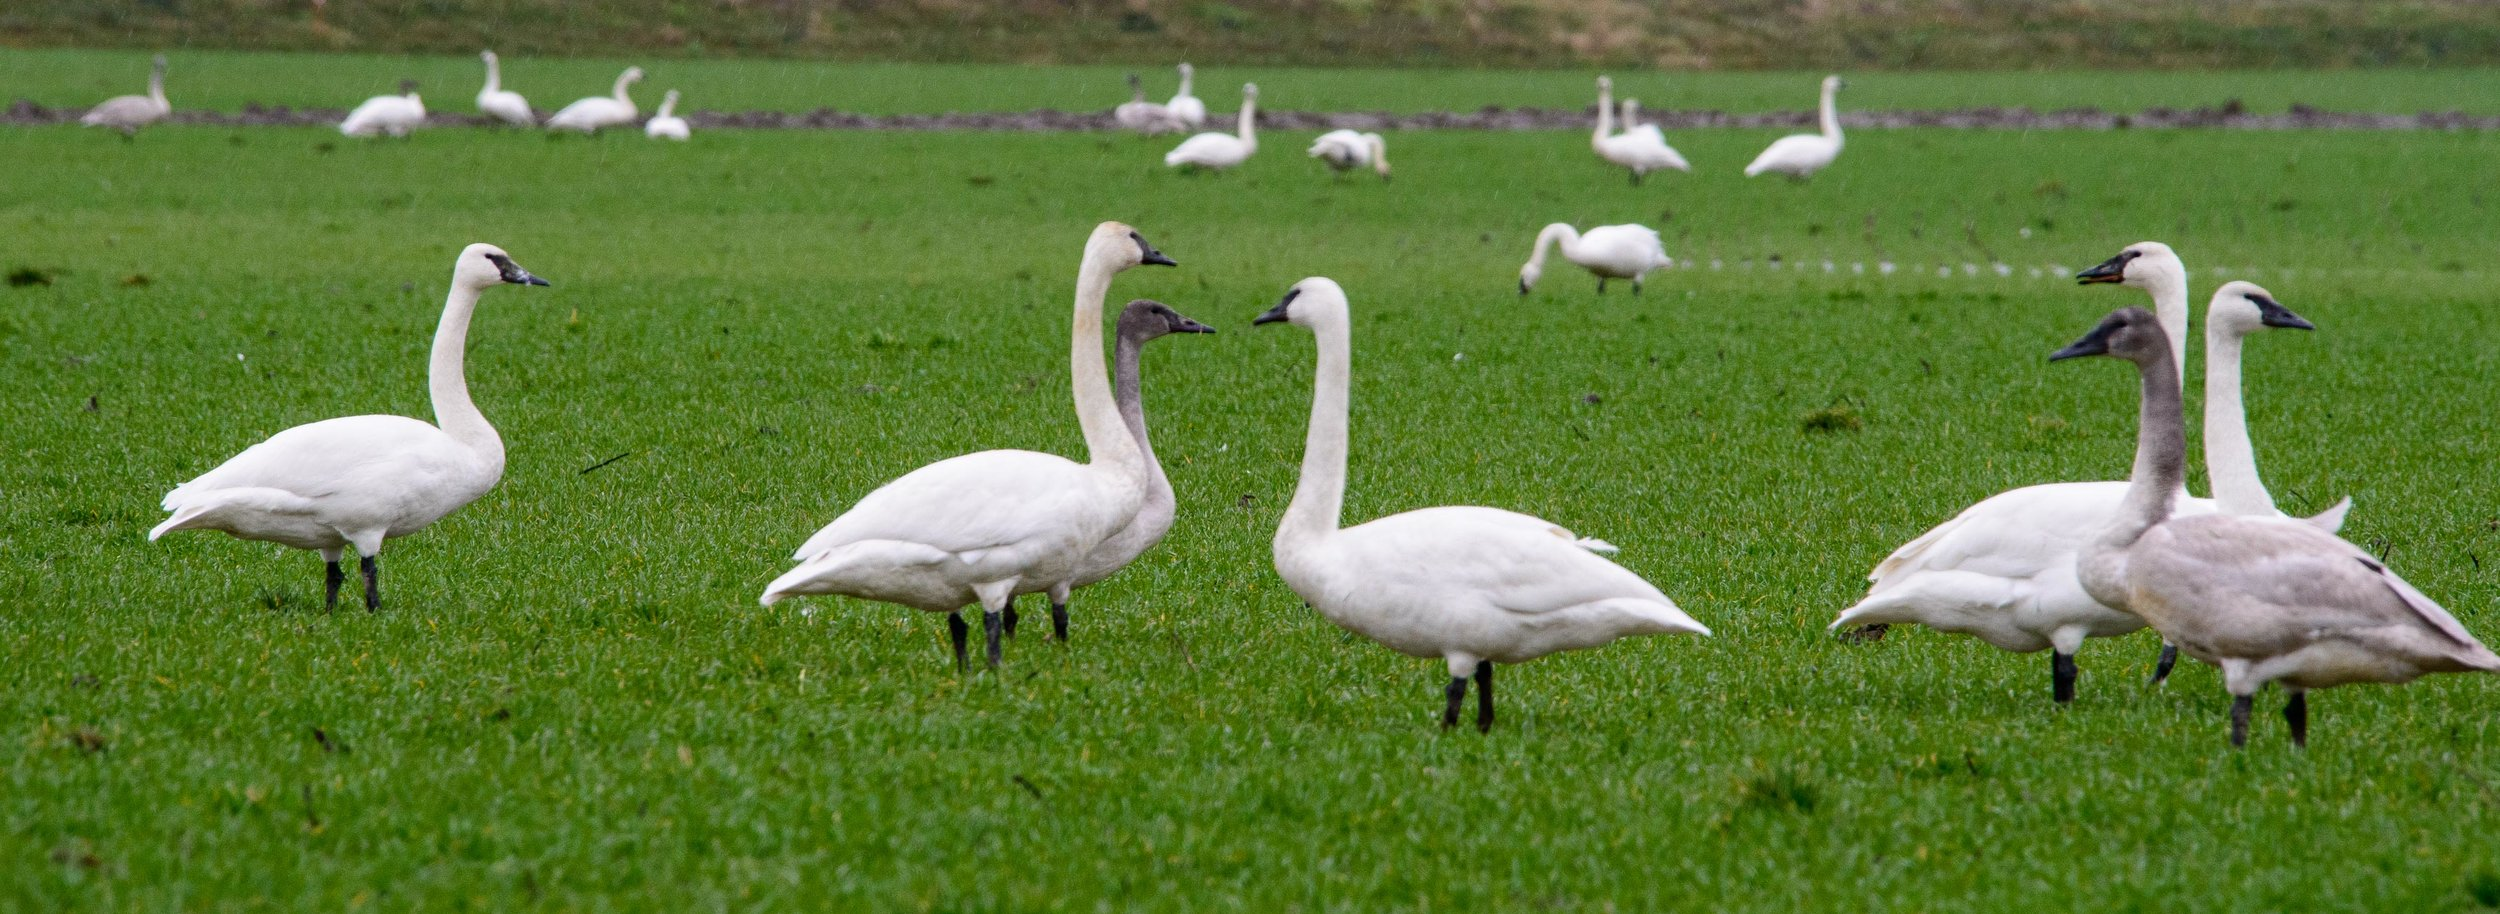 Trumpeter Swan families grazing, Skagit Flats, Mt. Vernon. PC: Thomas Bancroft